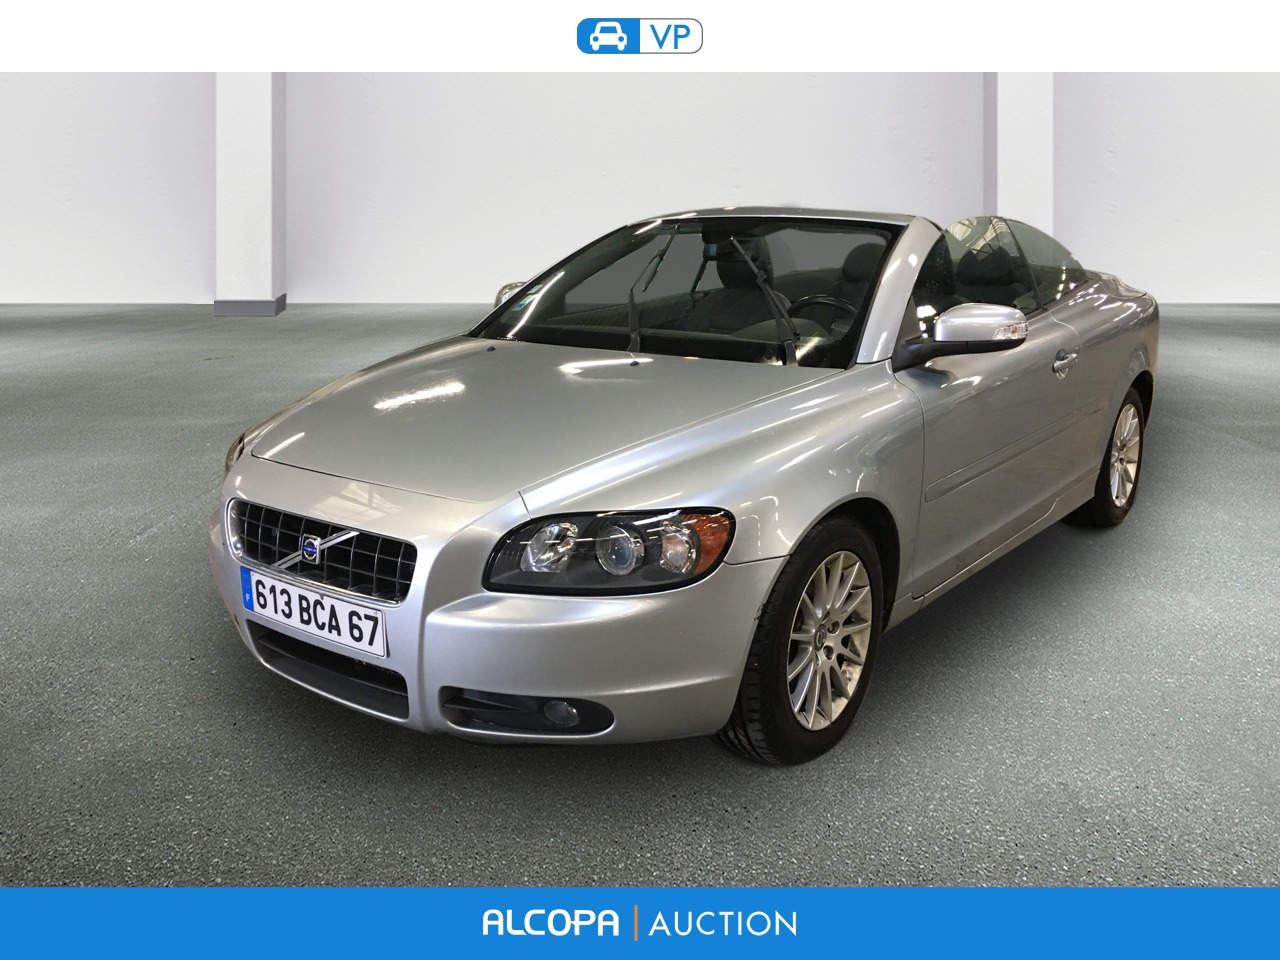 volvo c70 cabriolet c70 cabriolet 2 0d 136 momentum alcopa auction. Black Bedroom Furniture Sets. Home Design Ideas